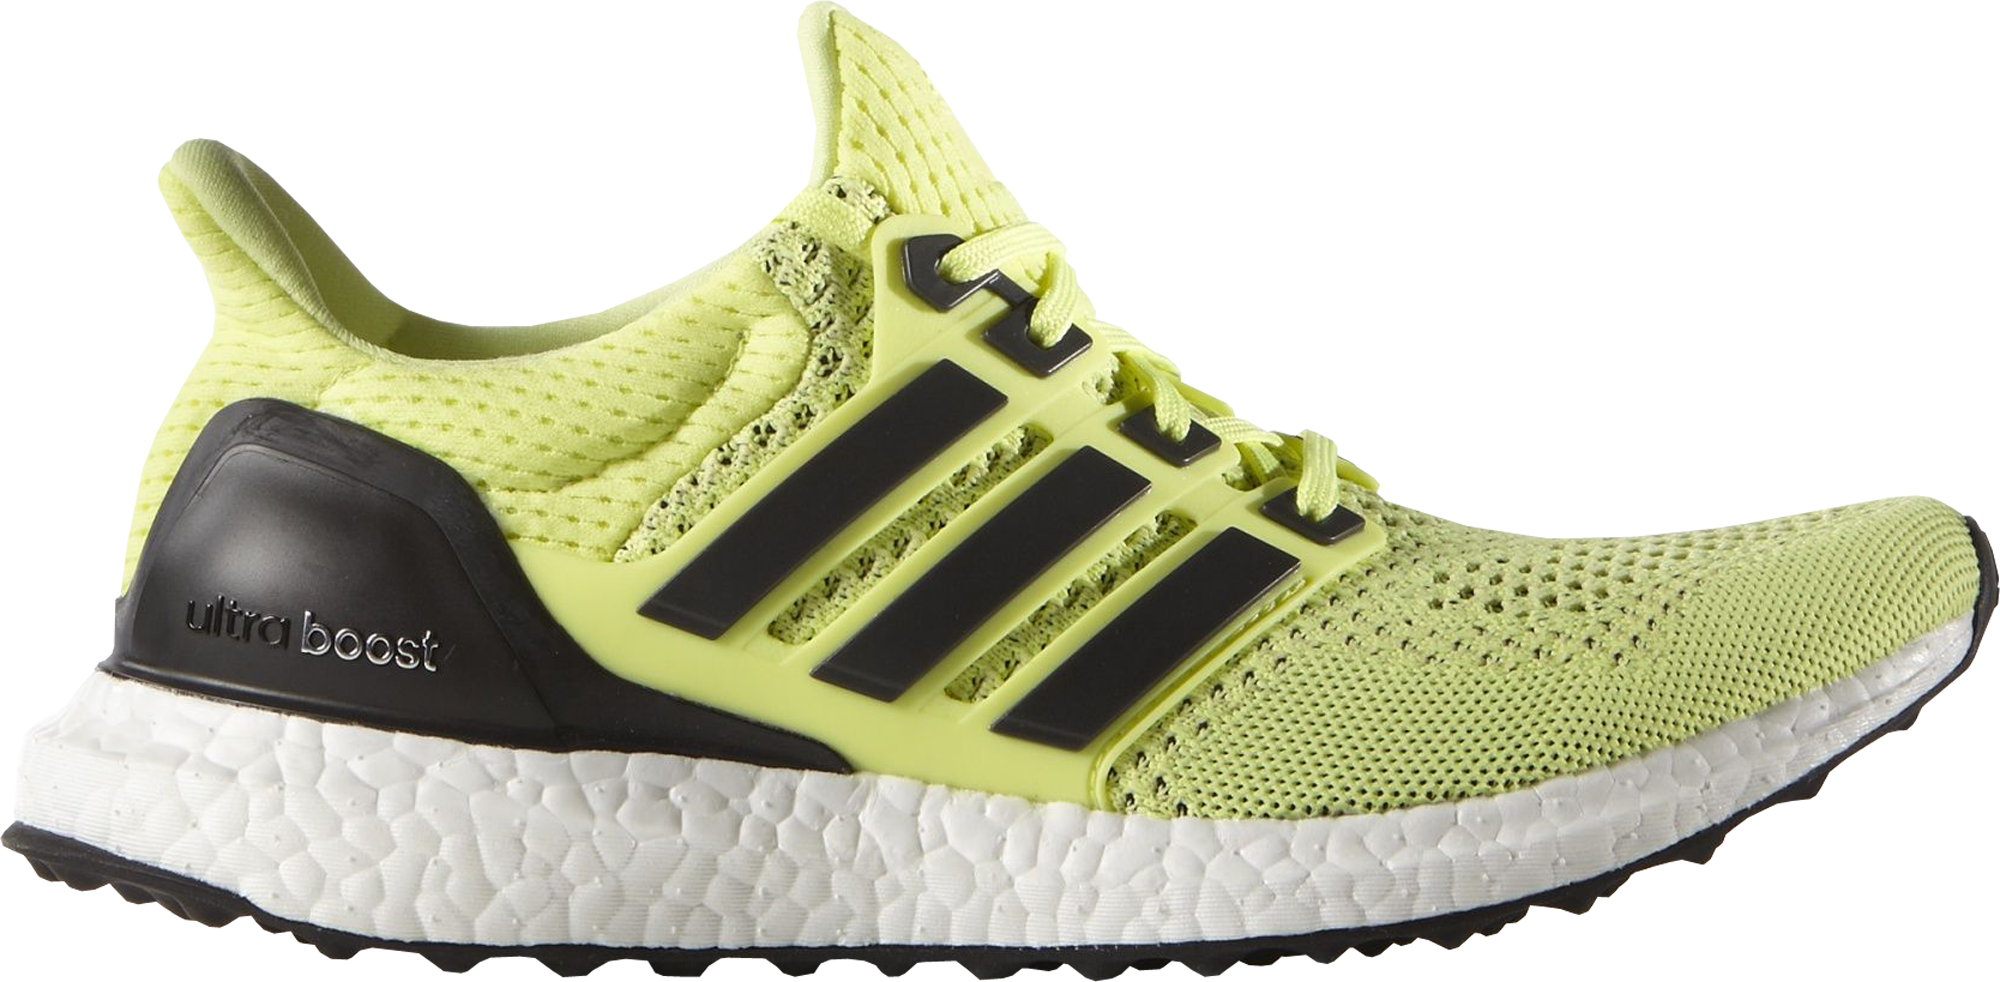 discount adidas ultra boost womens pink yellow 3983a c7ef8